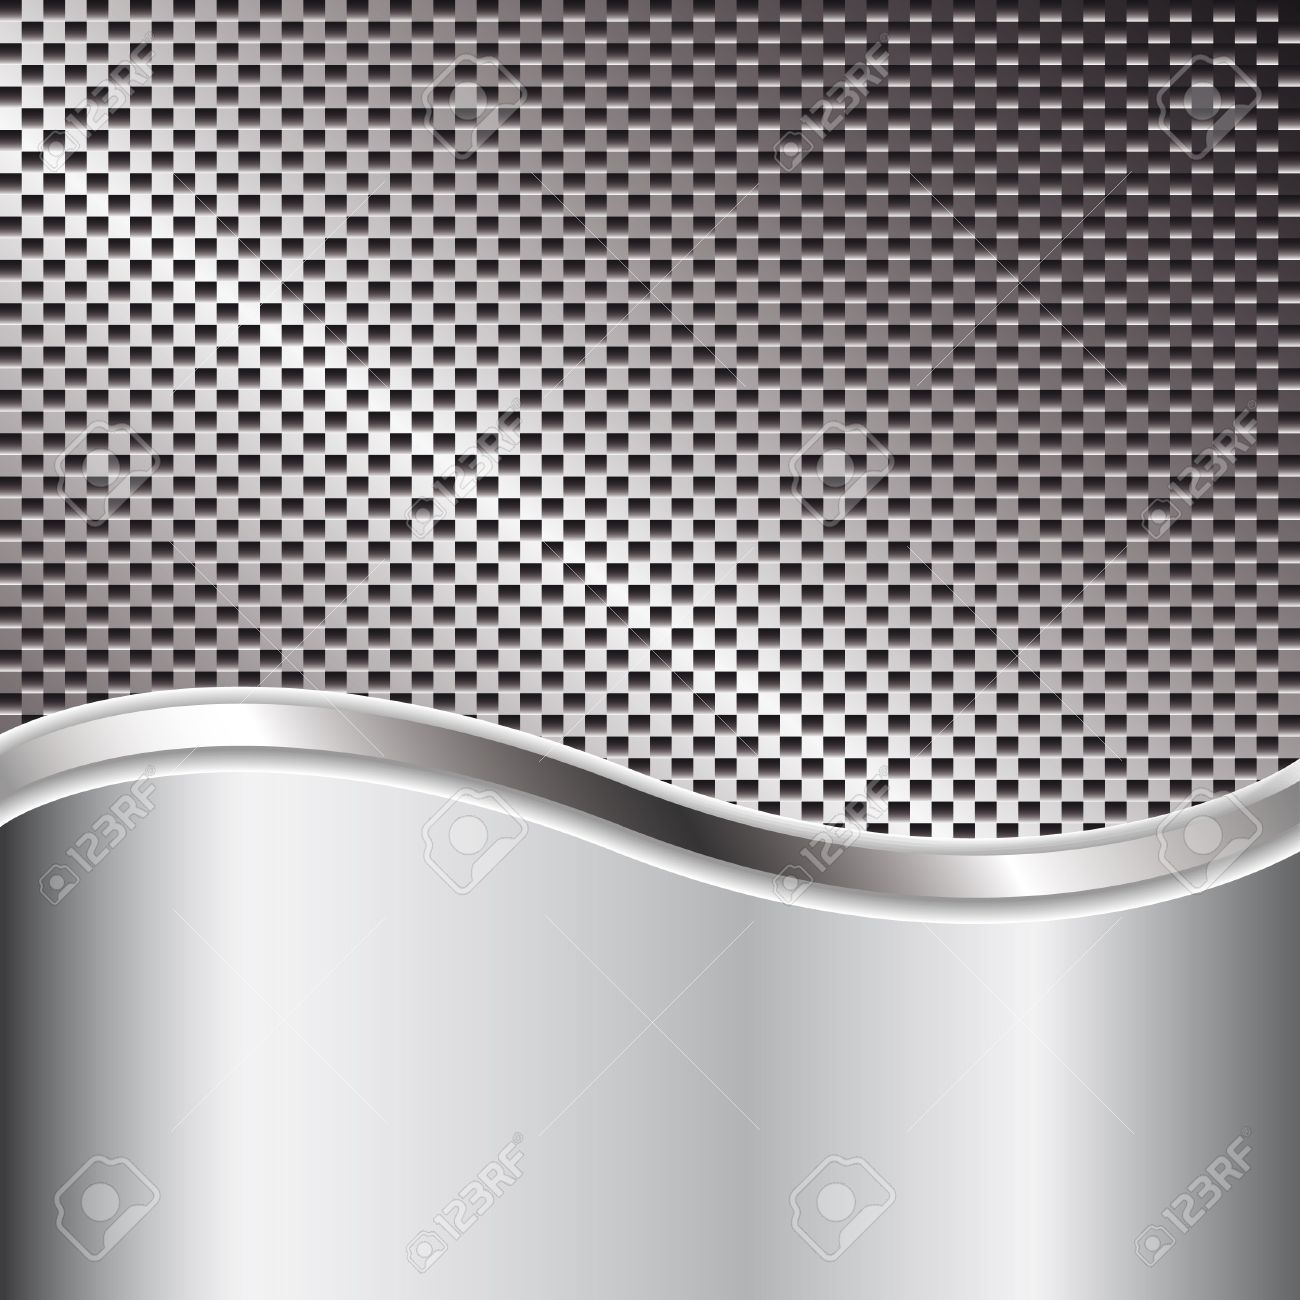 Metal background for your design - 10555682